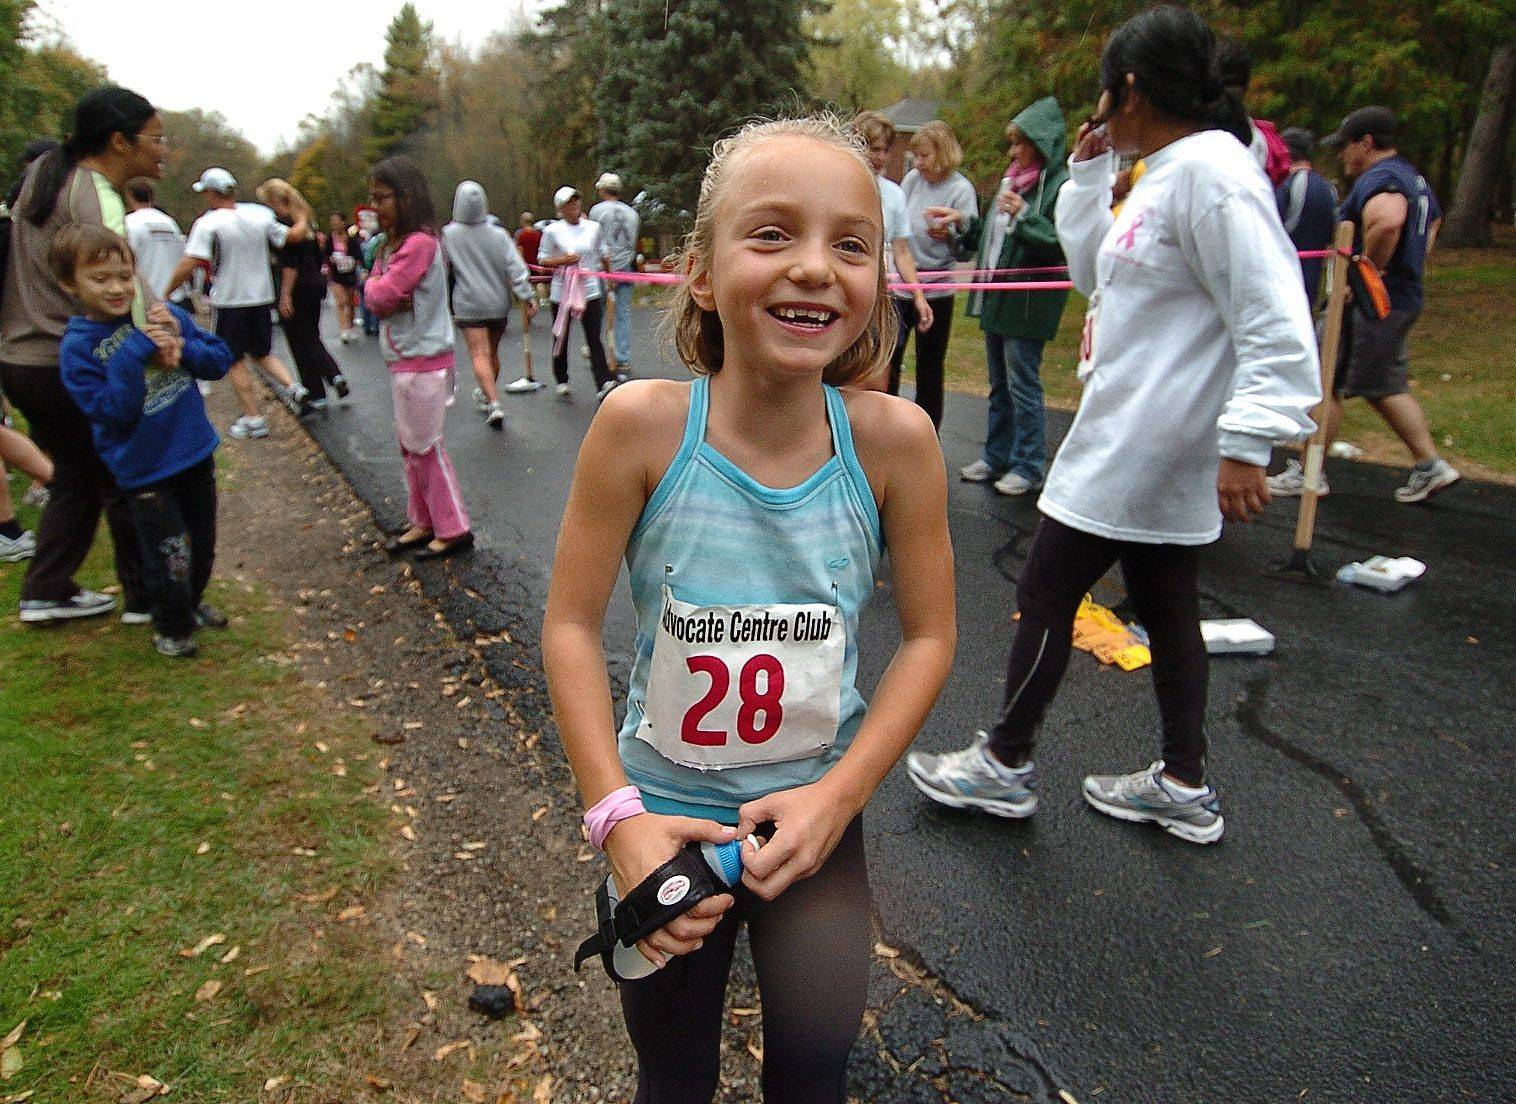 7-year-old Sydney Boudreau of Mundelein donated $50.50 in honor of a family friend who is a breast cancer survivor, to run in the first-ever Advocate Condell Centre Club Pink Ribbon run at St. Mary of the Lake Seminary in Mundelein.